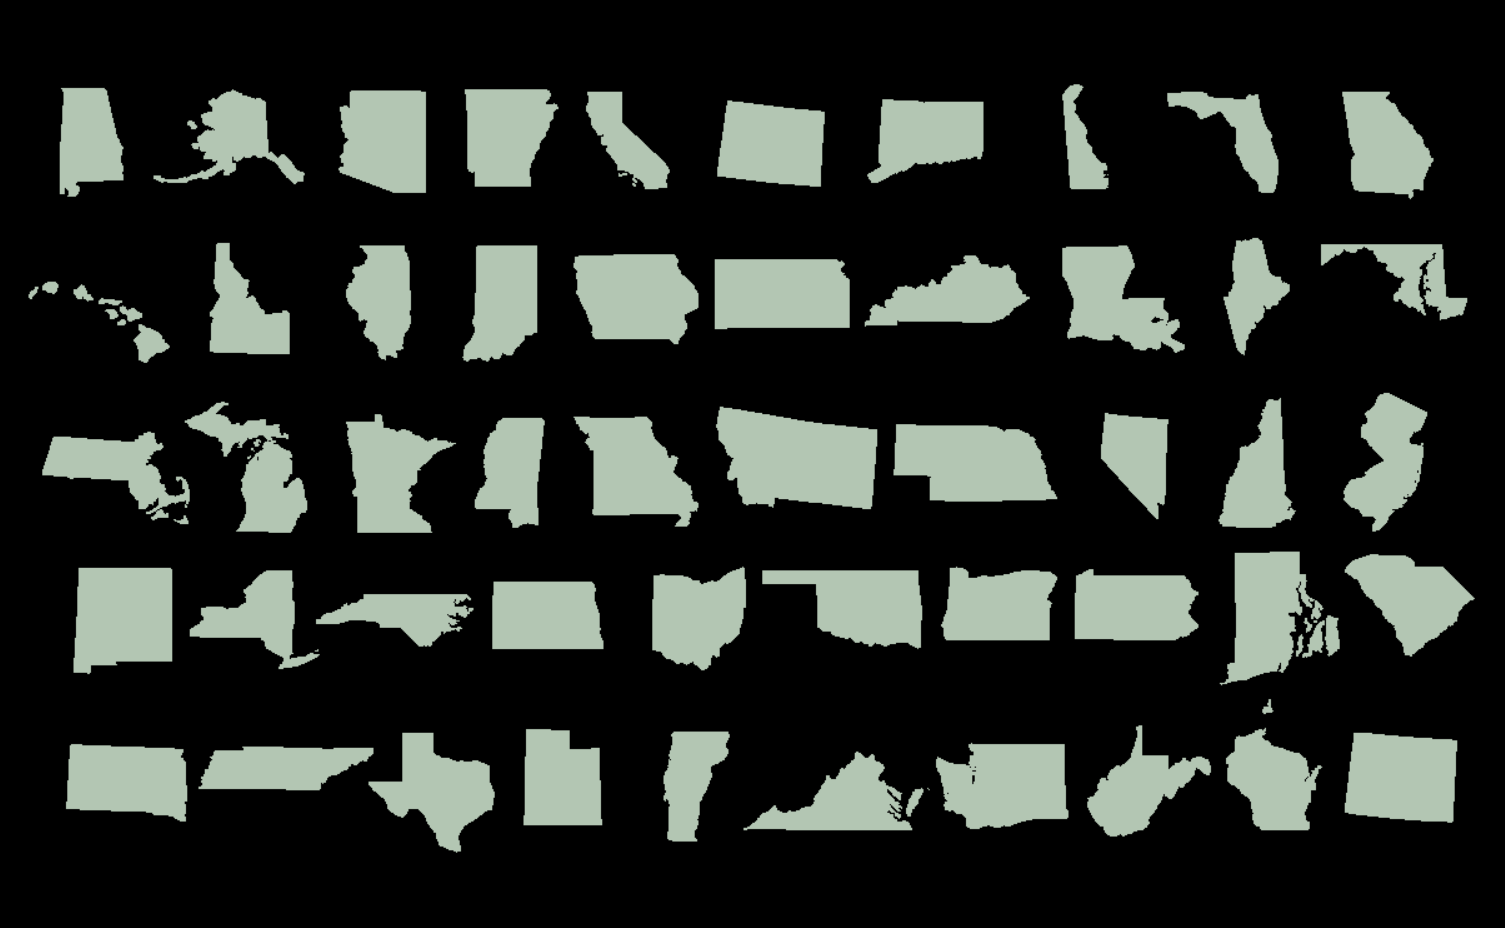 State Outlines - All 50 States - DXF files for laser cutting ...